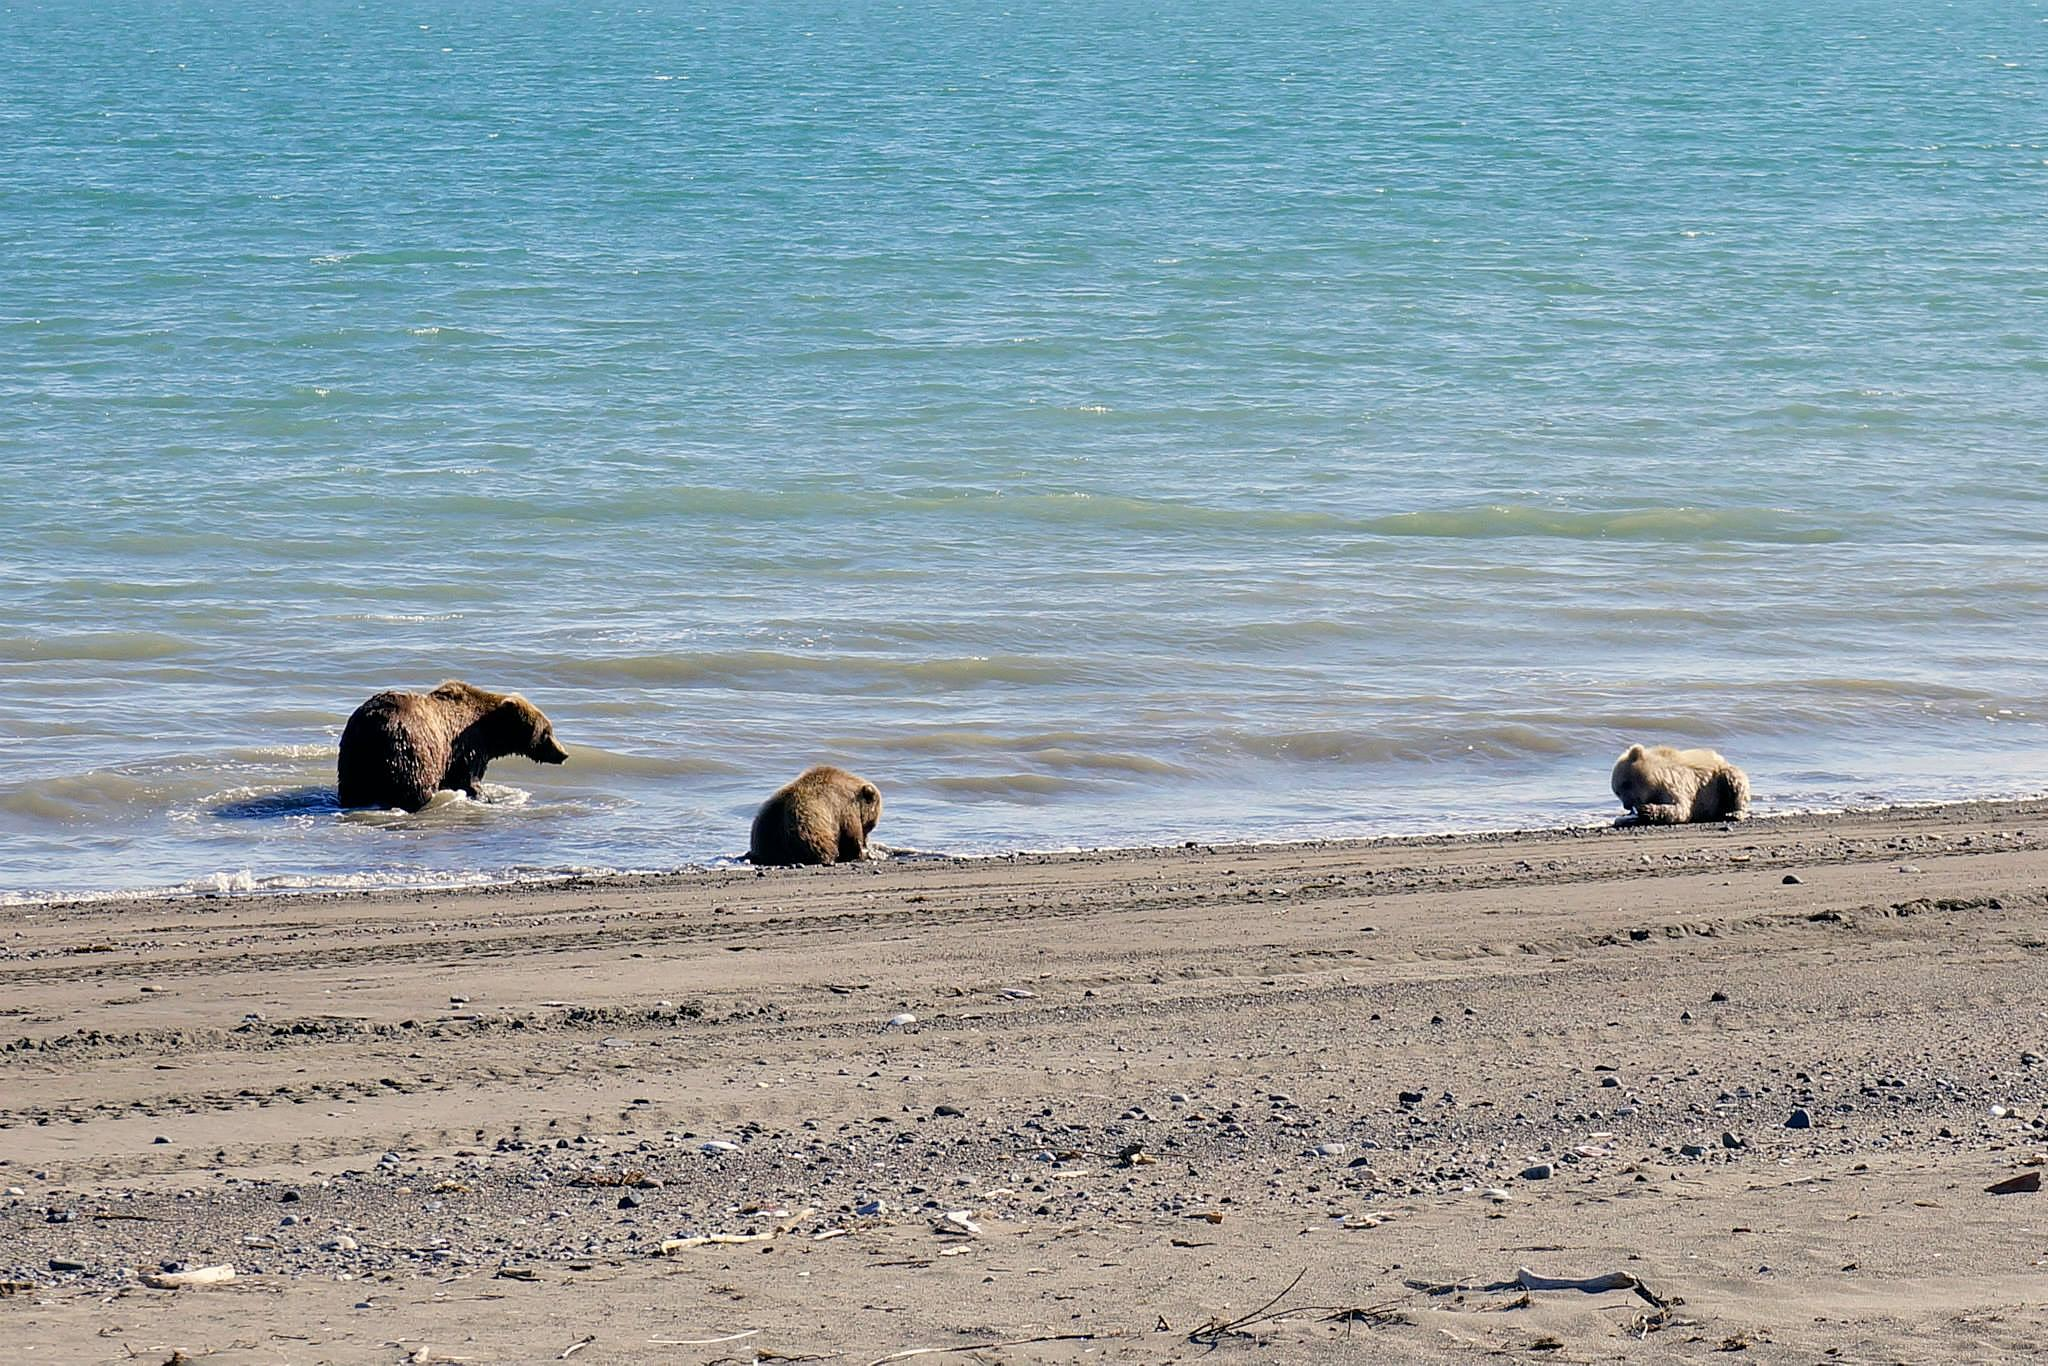 Bears having lunch by Charles Sather